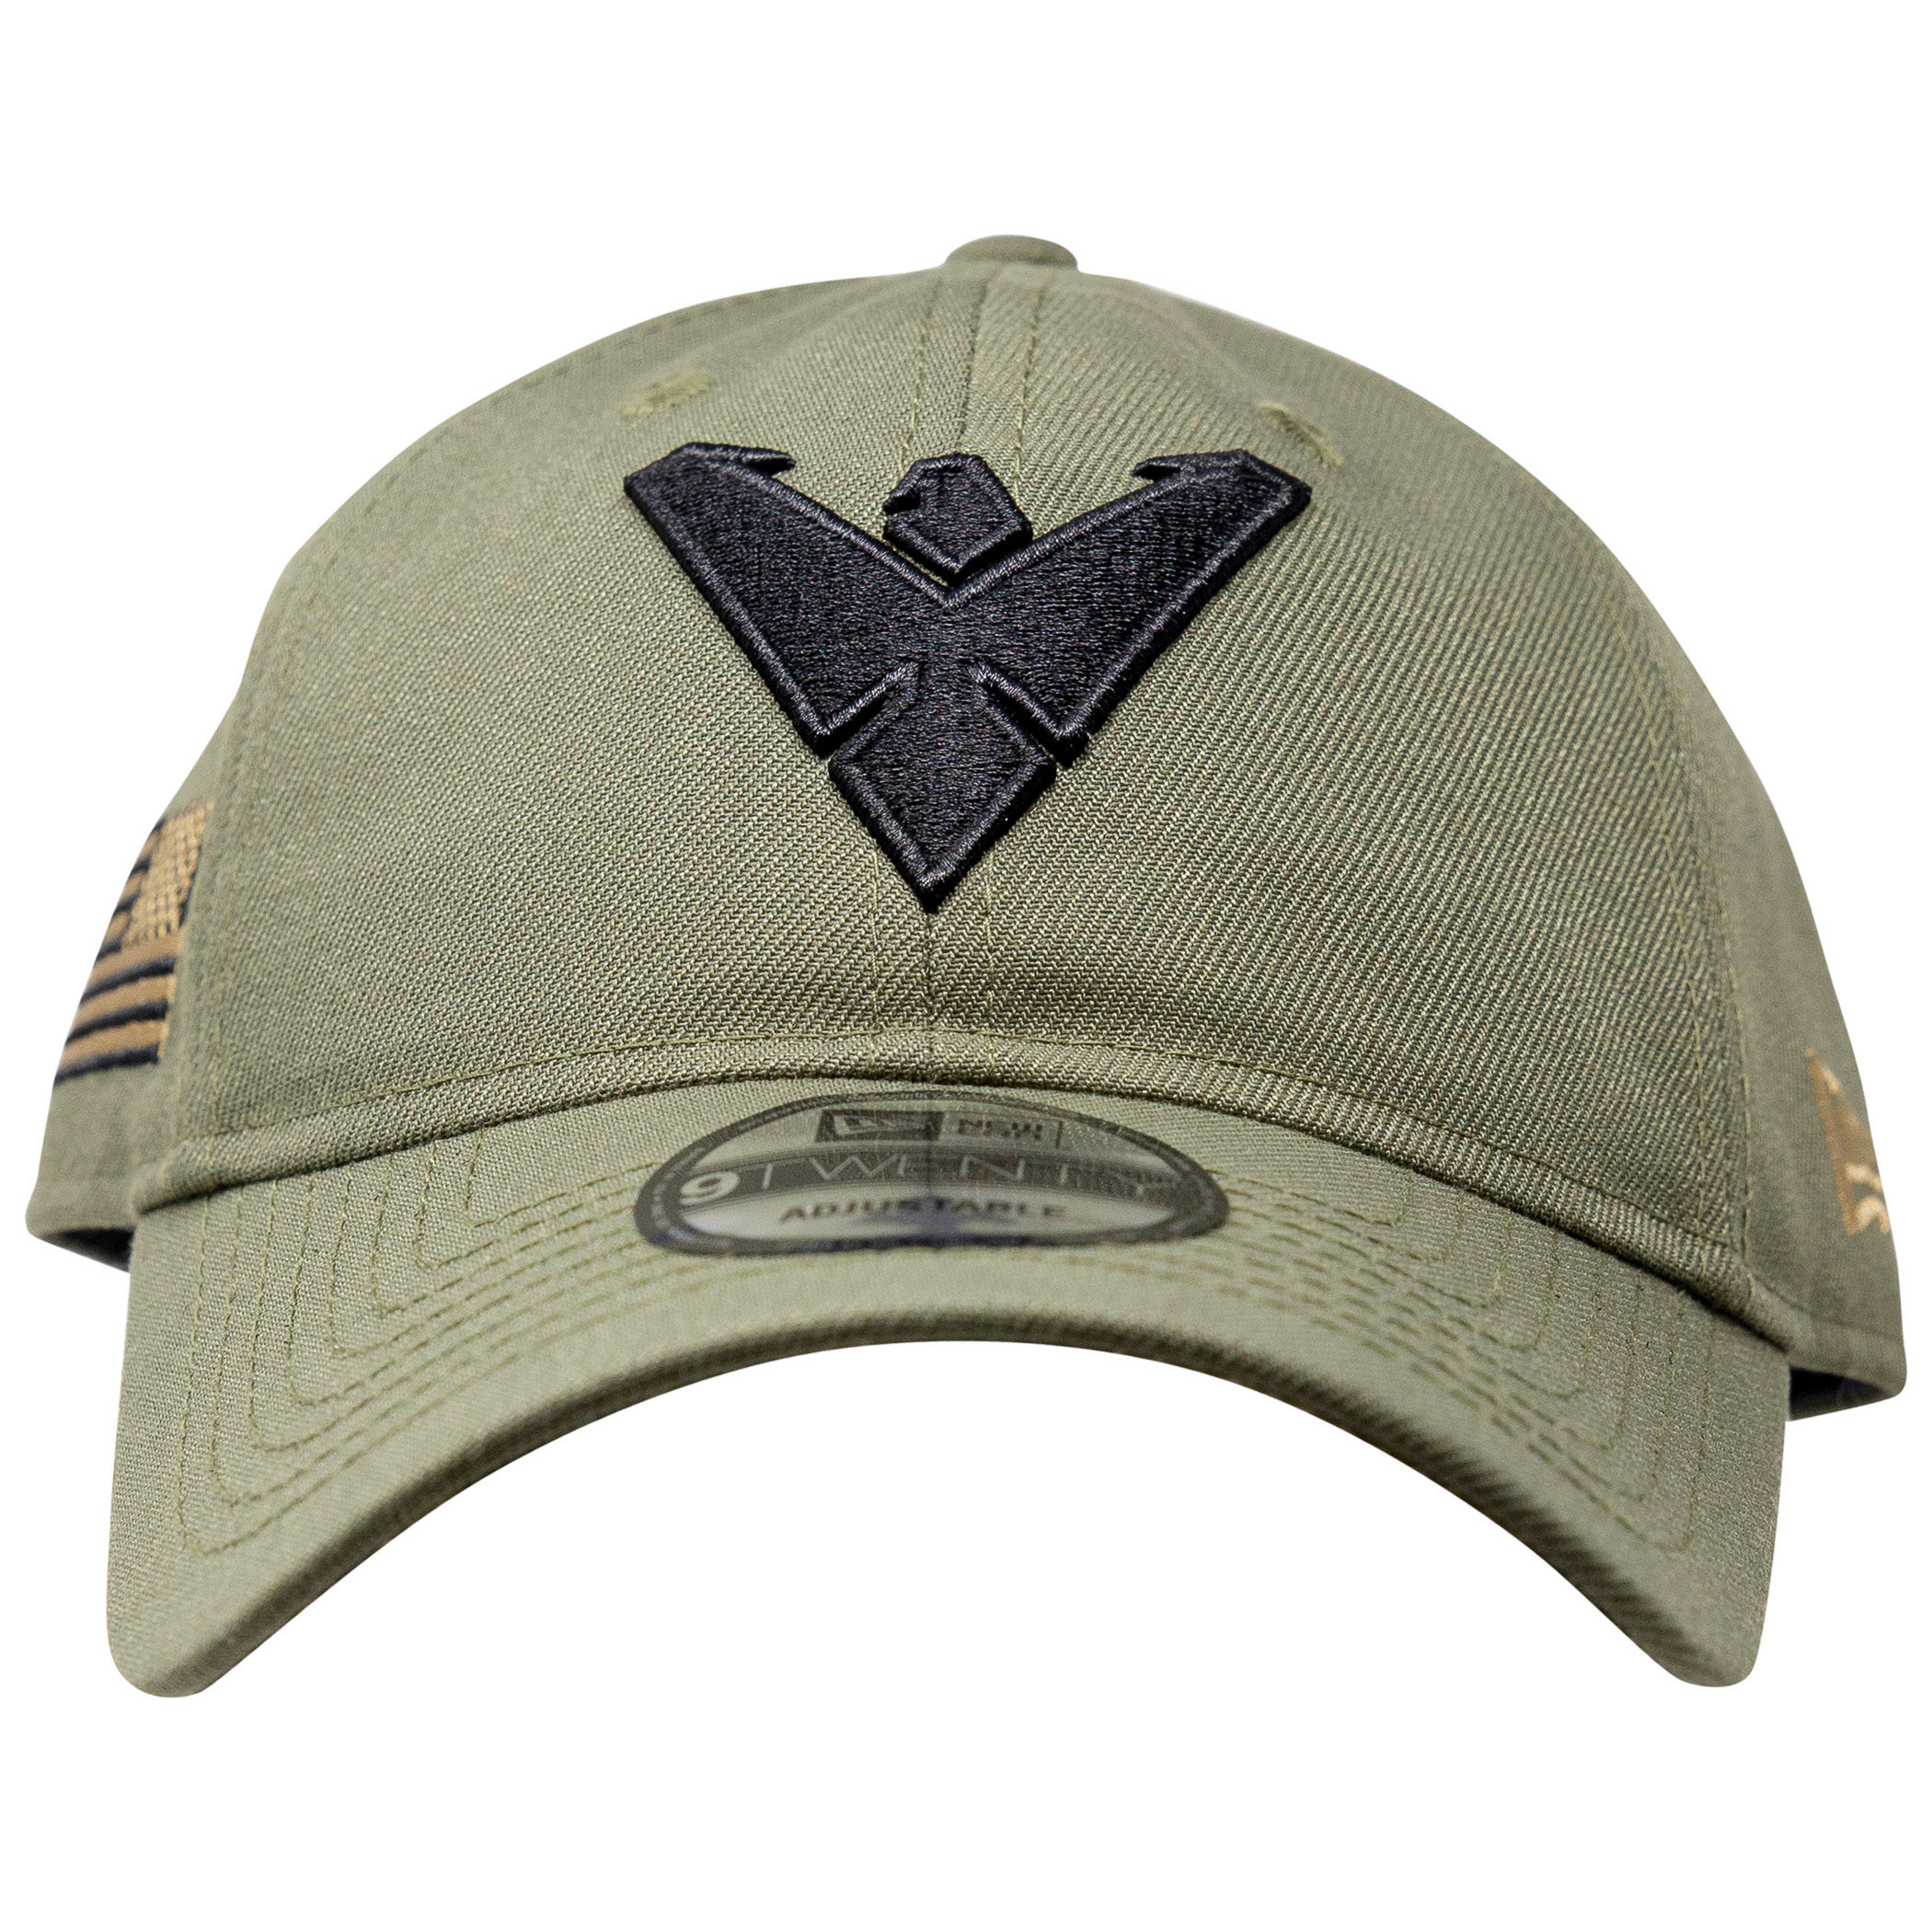 Nightwing Salute To Service New Era 9Twenty Adjustable Hat